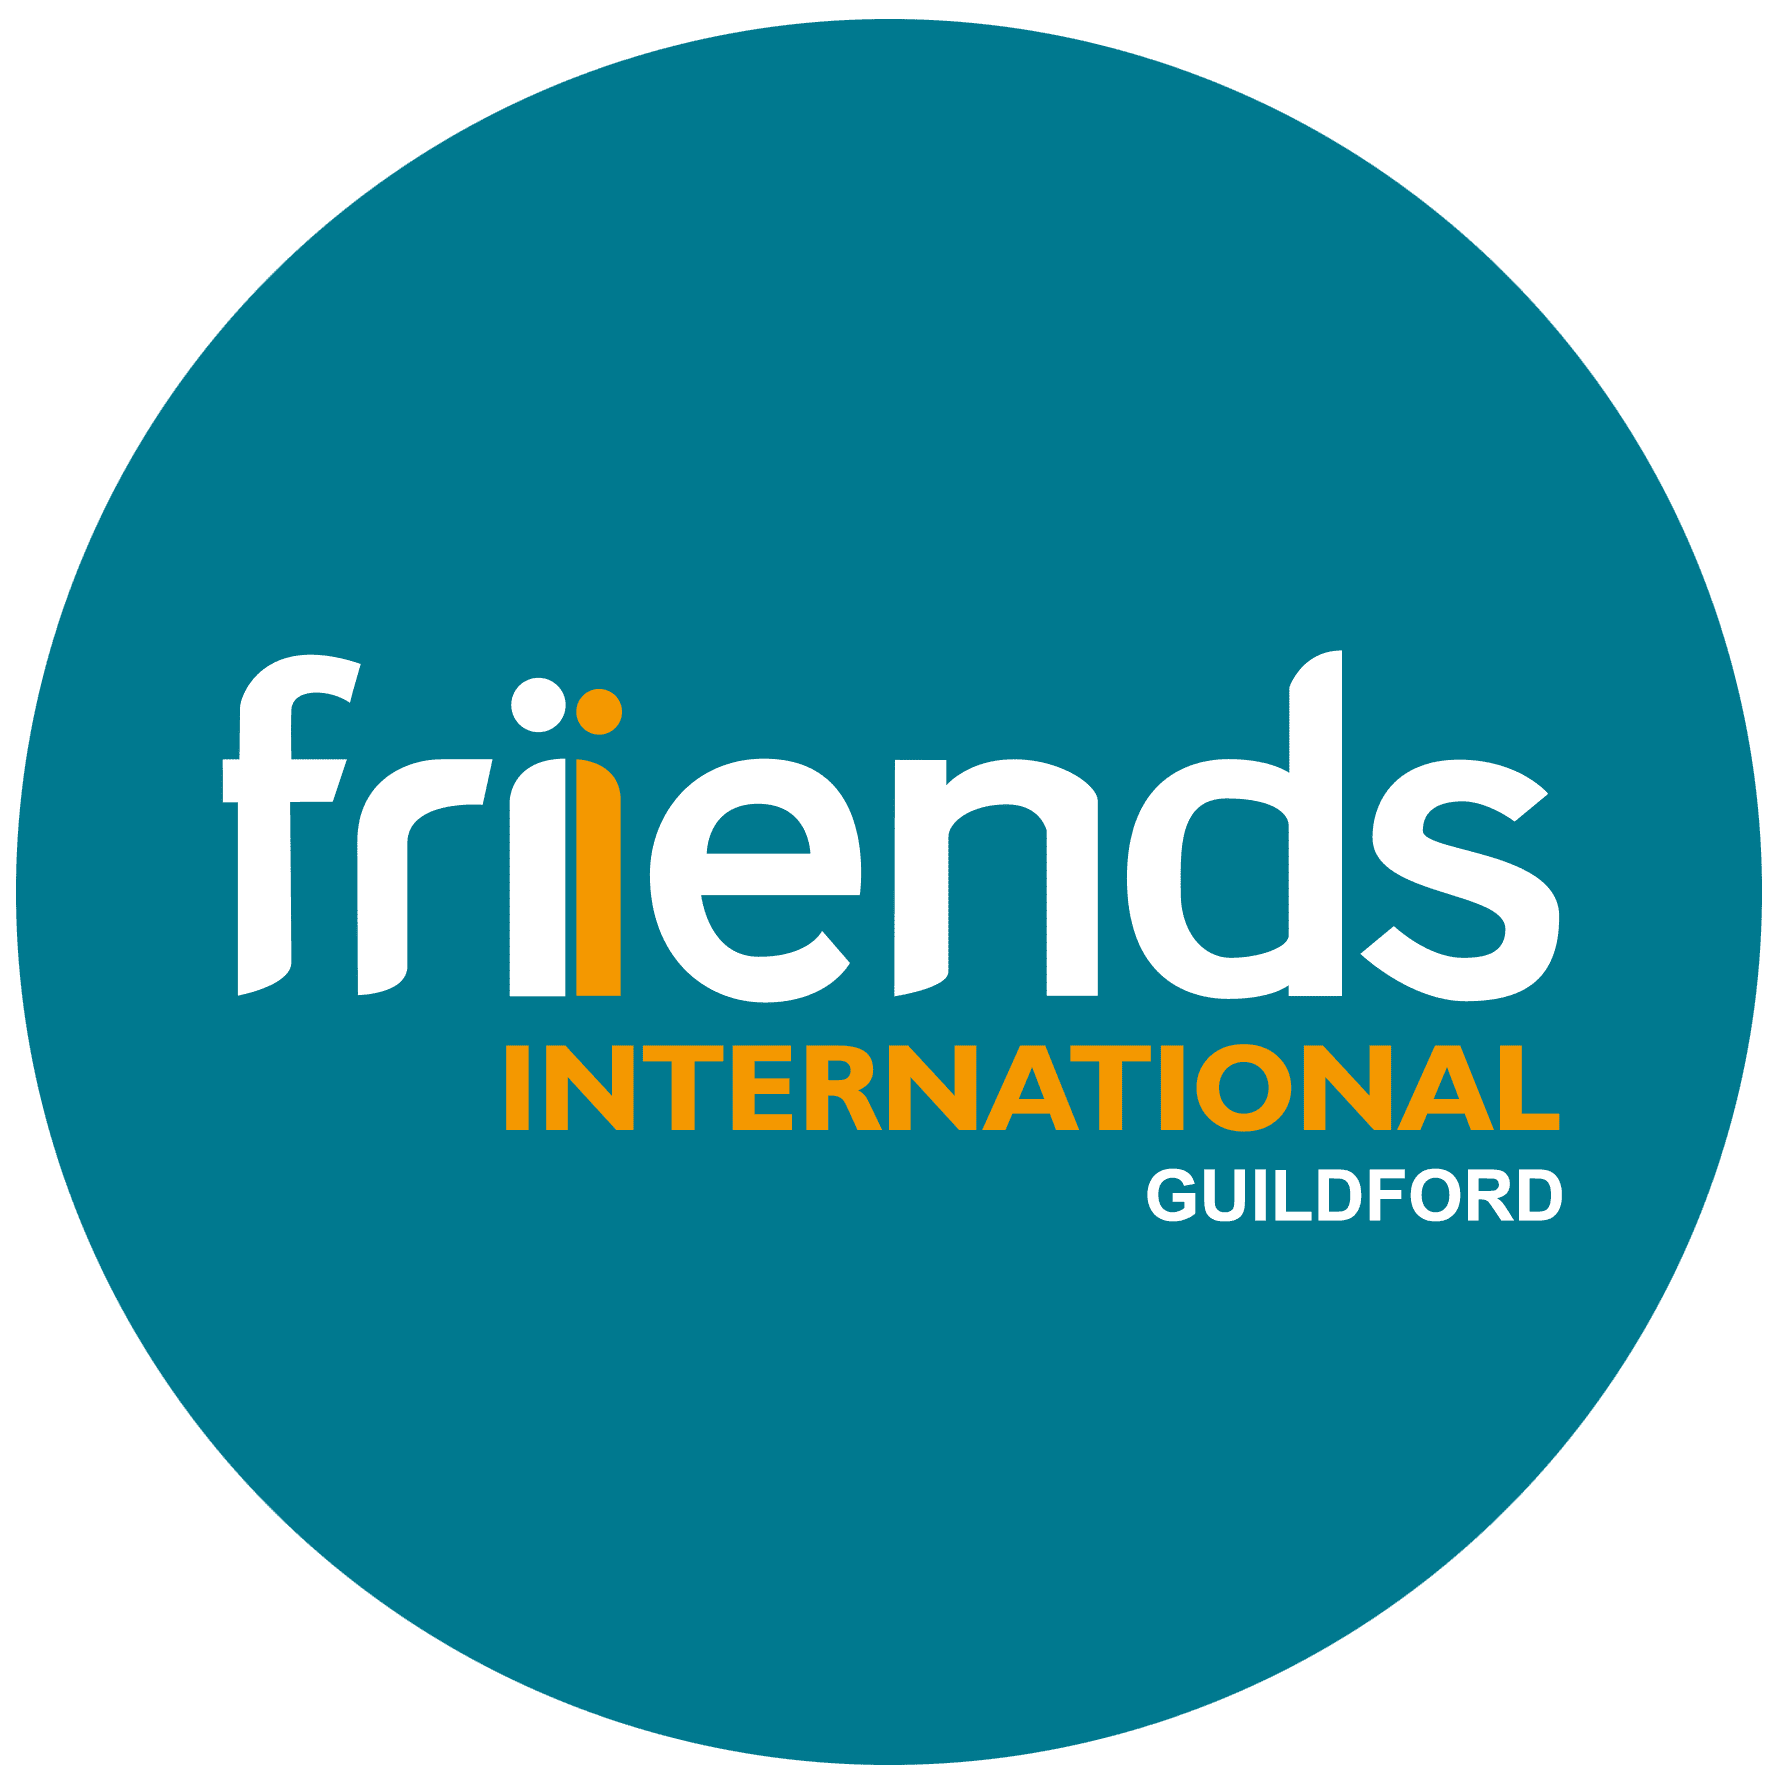 Friends International Guildford